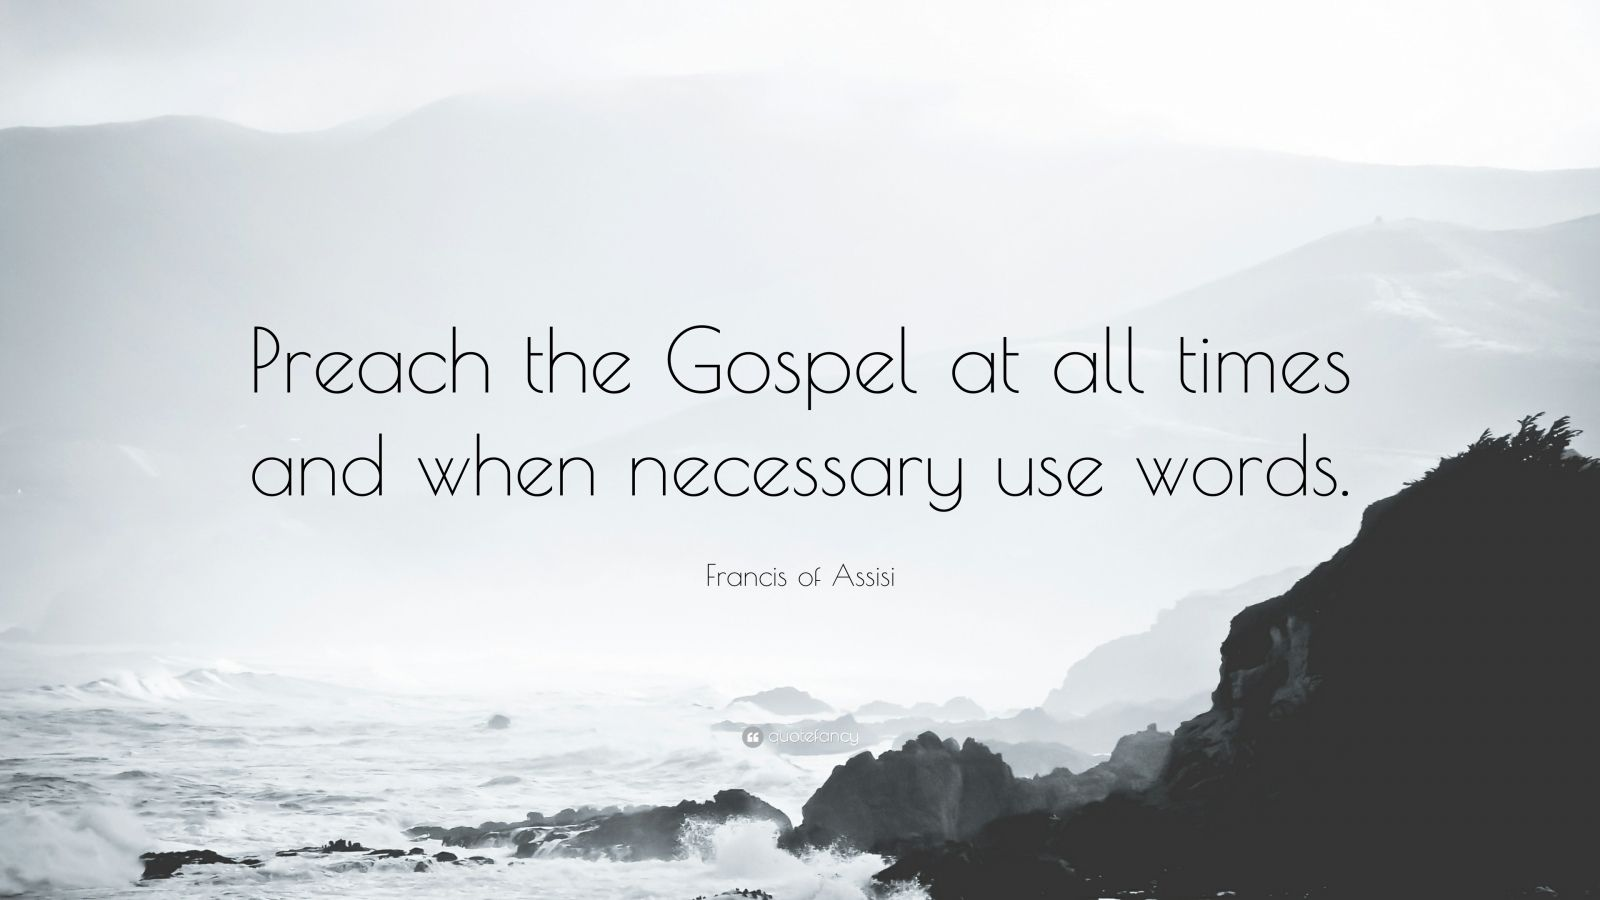 St Francis Of Assisi Quotes Francis Of Assisi Quotes 90 Wallpapers  Quotefancy